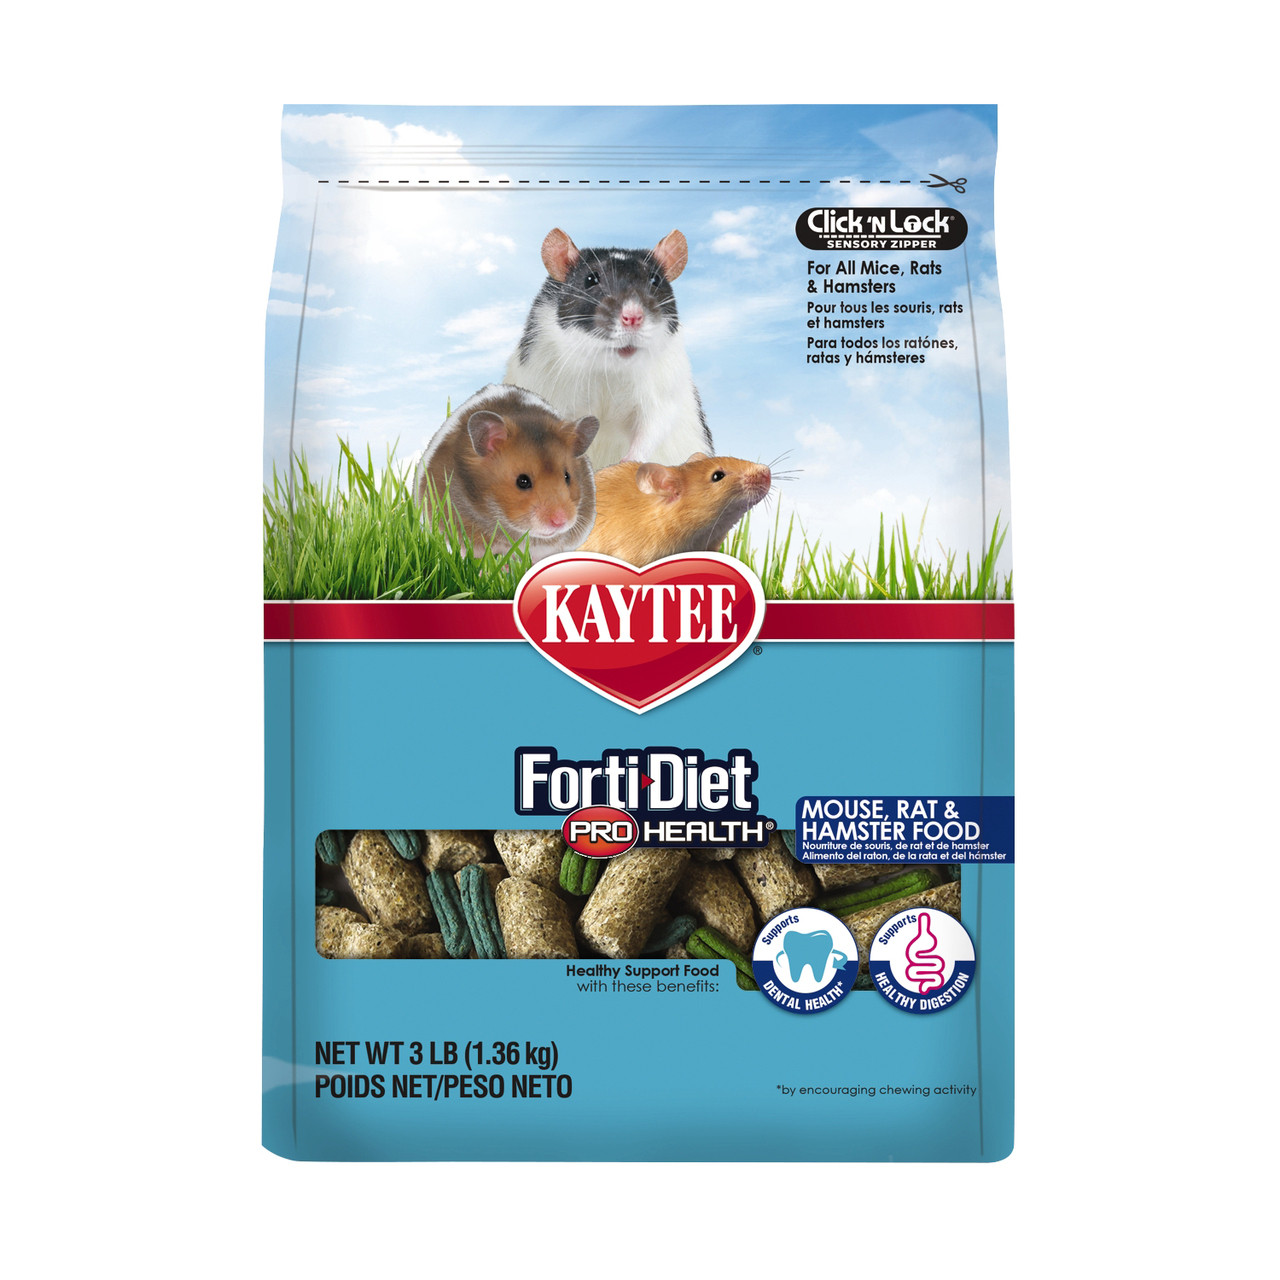 Kaytee Forti-Diet Pro Health Mouse, Rat, and Hamster Food